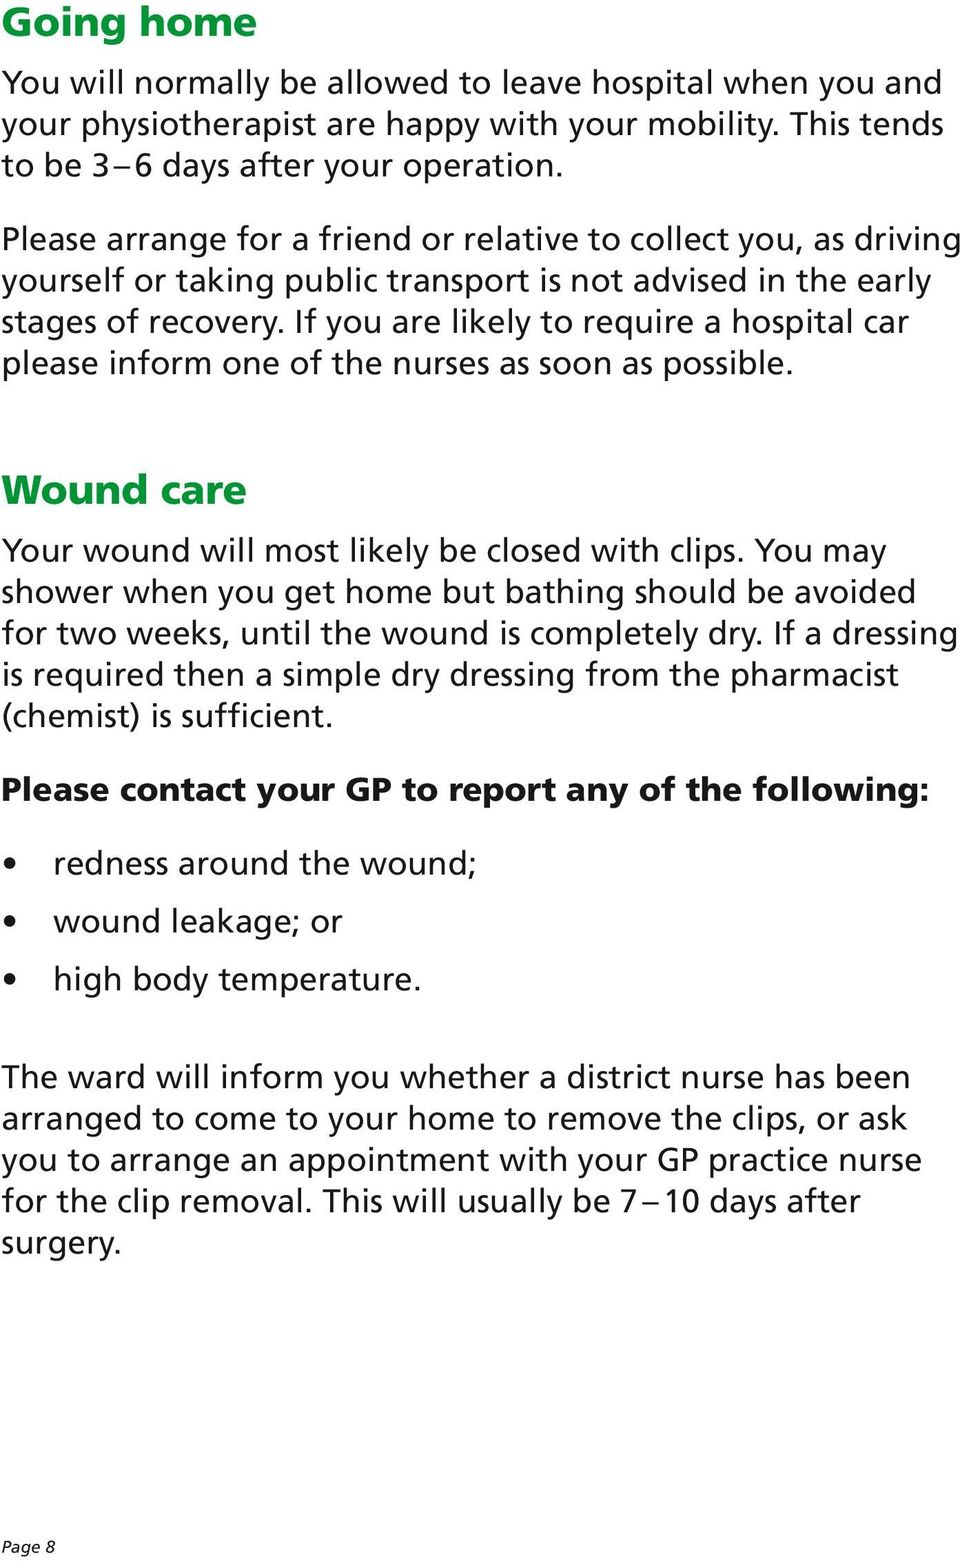 If you are likely to require a hospital car please inform one of the nurses as soon as possible. Wound care Your wound will most likely be closed with clips.